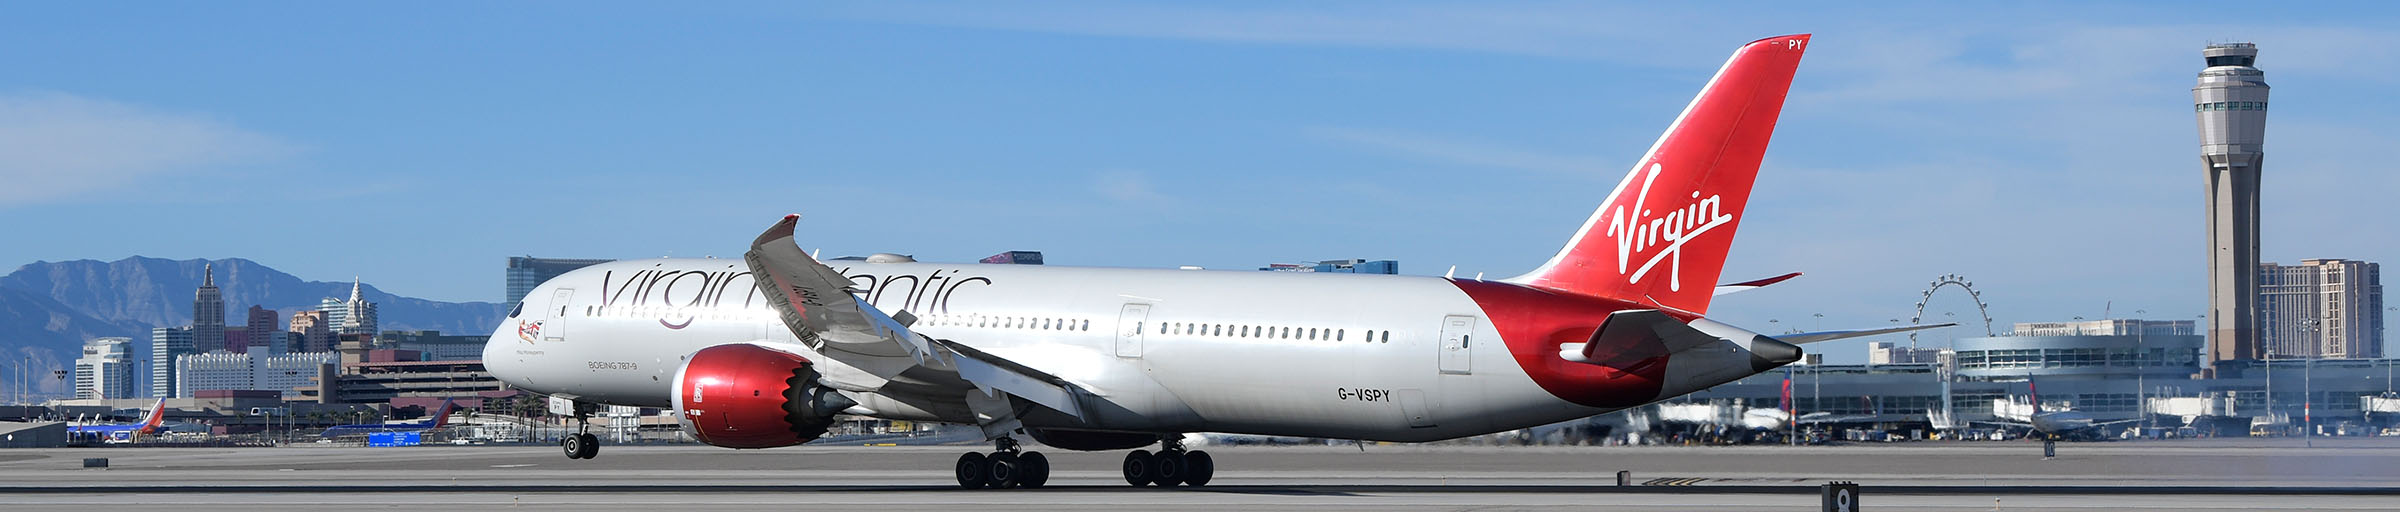 Virgin Atlantic at McCarran